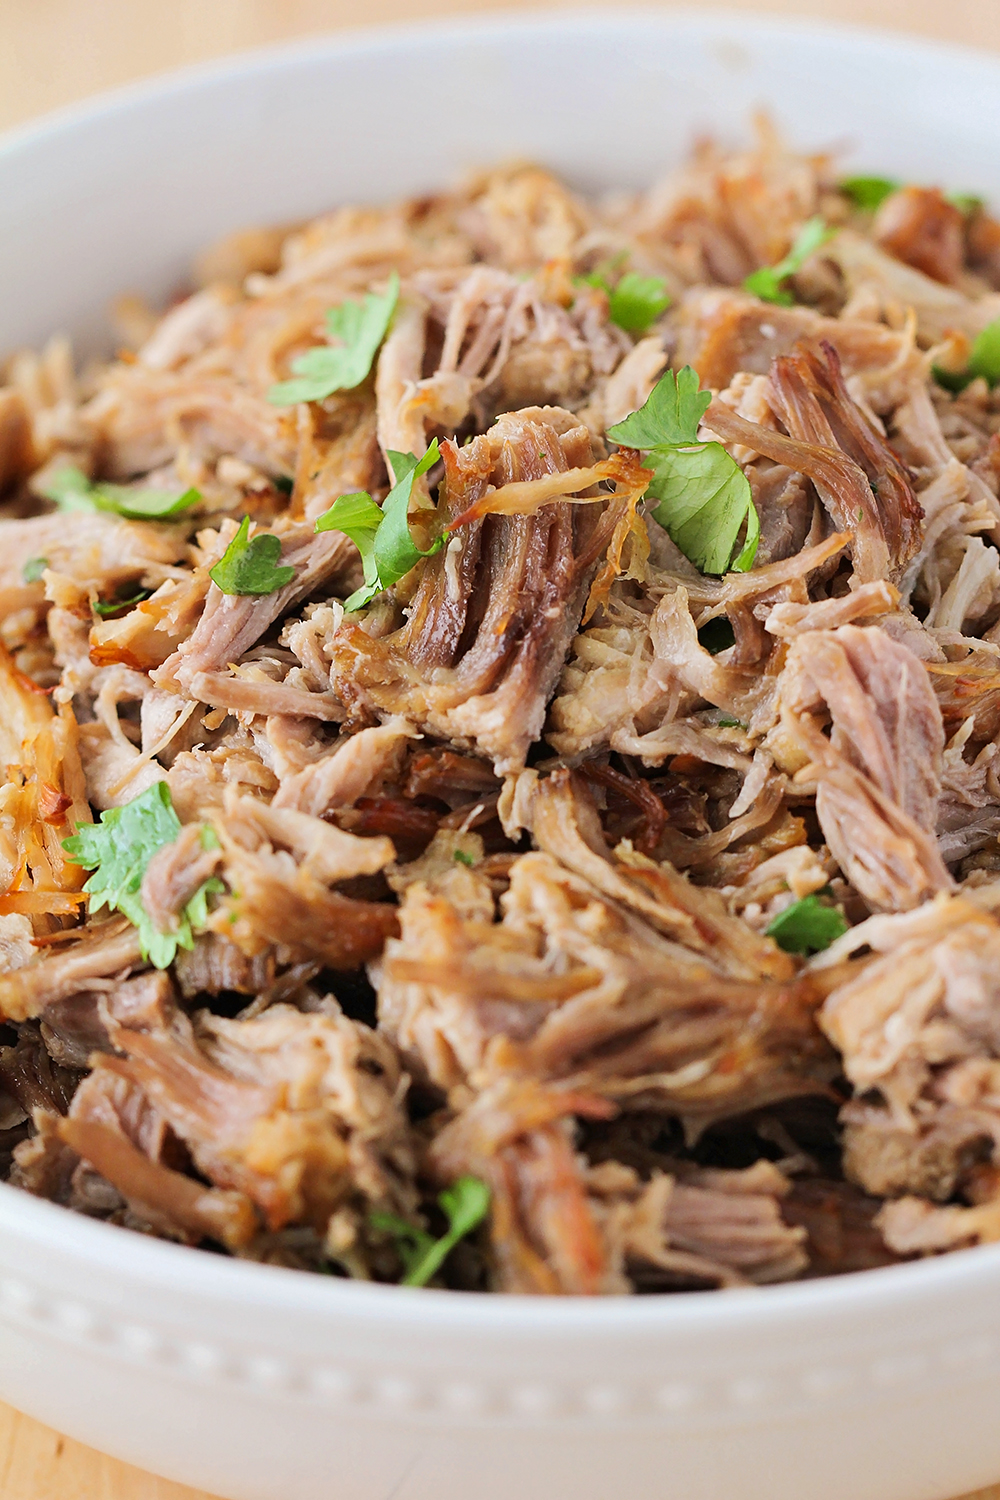 These instant pot carnitas are so savory and flavorful, and take just a few minutes of active time to make!